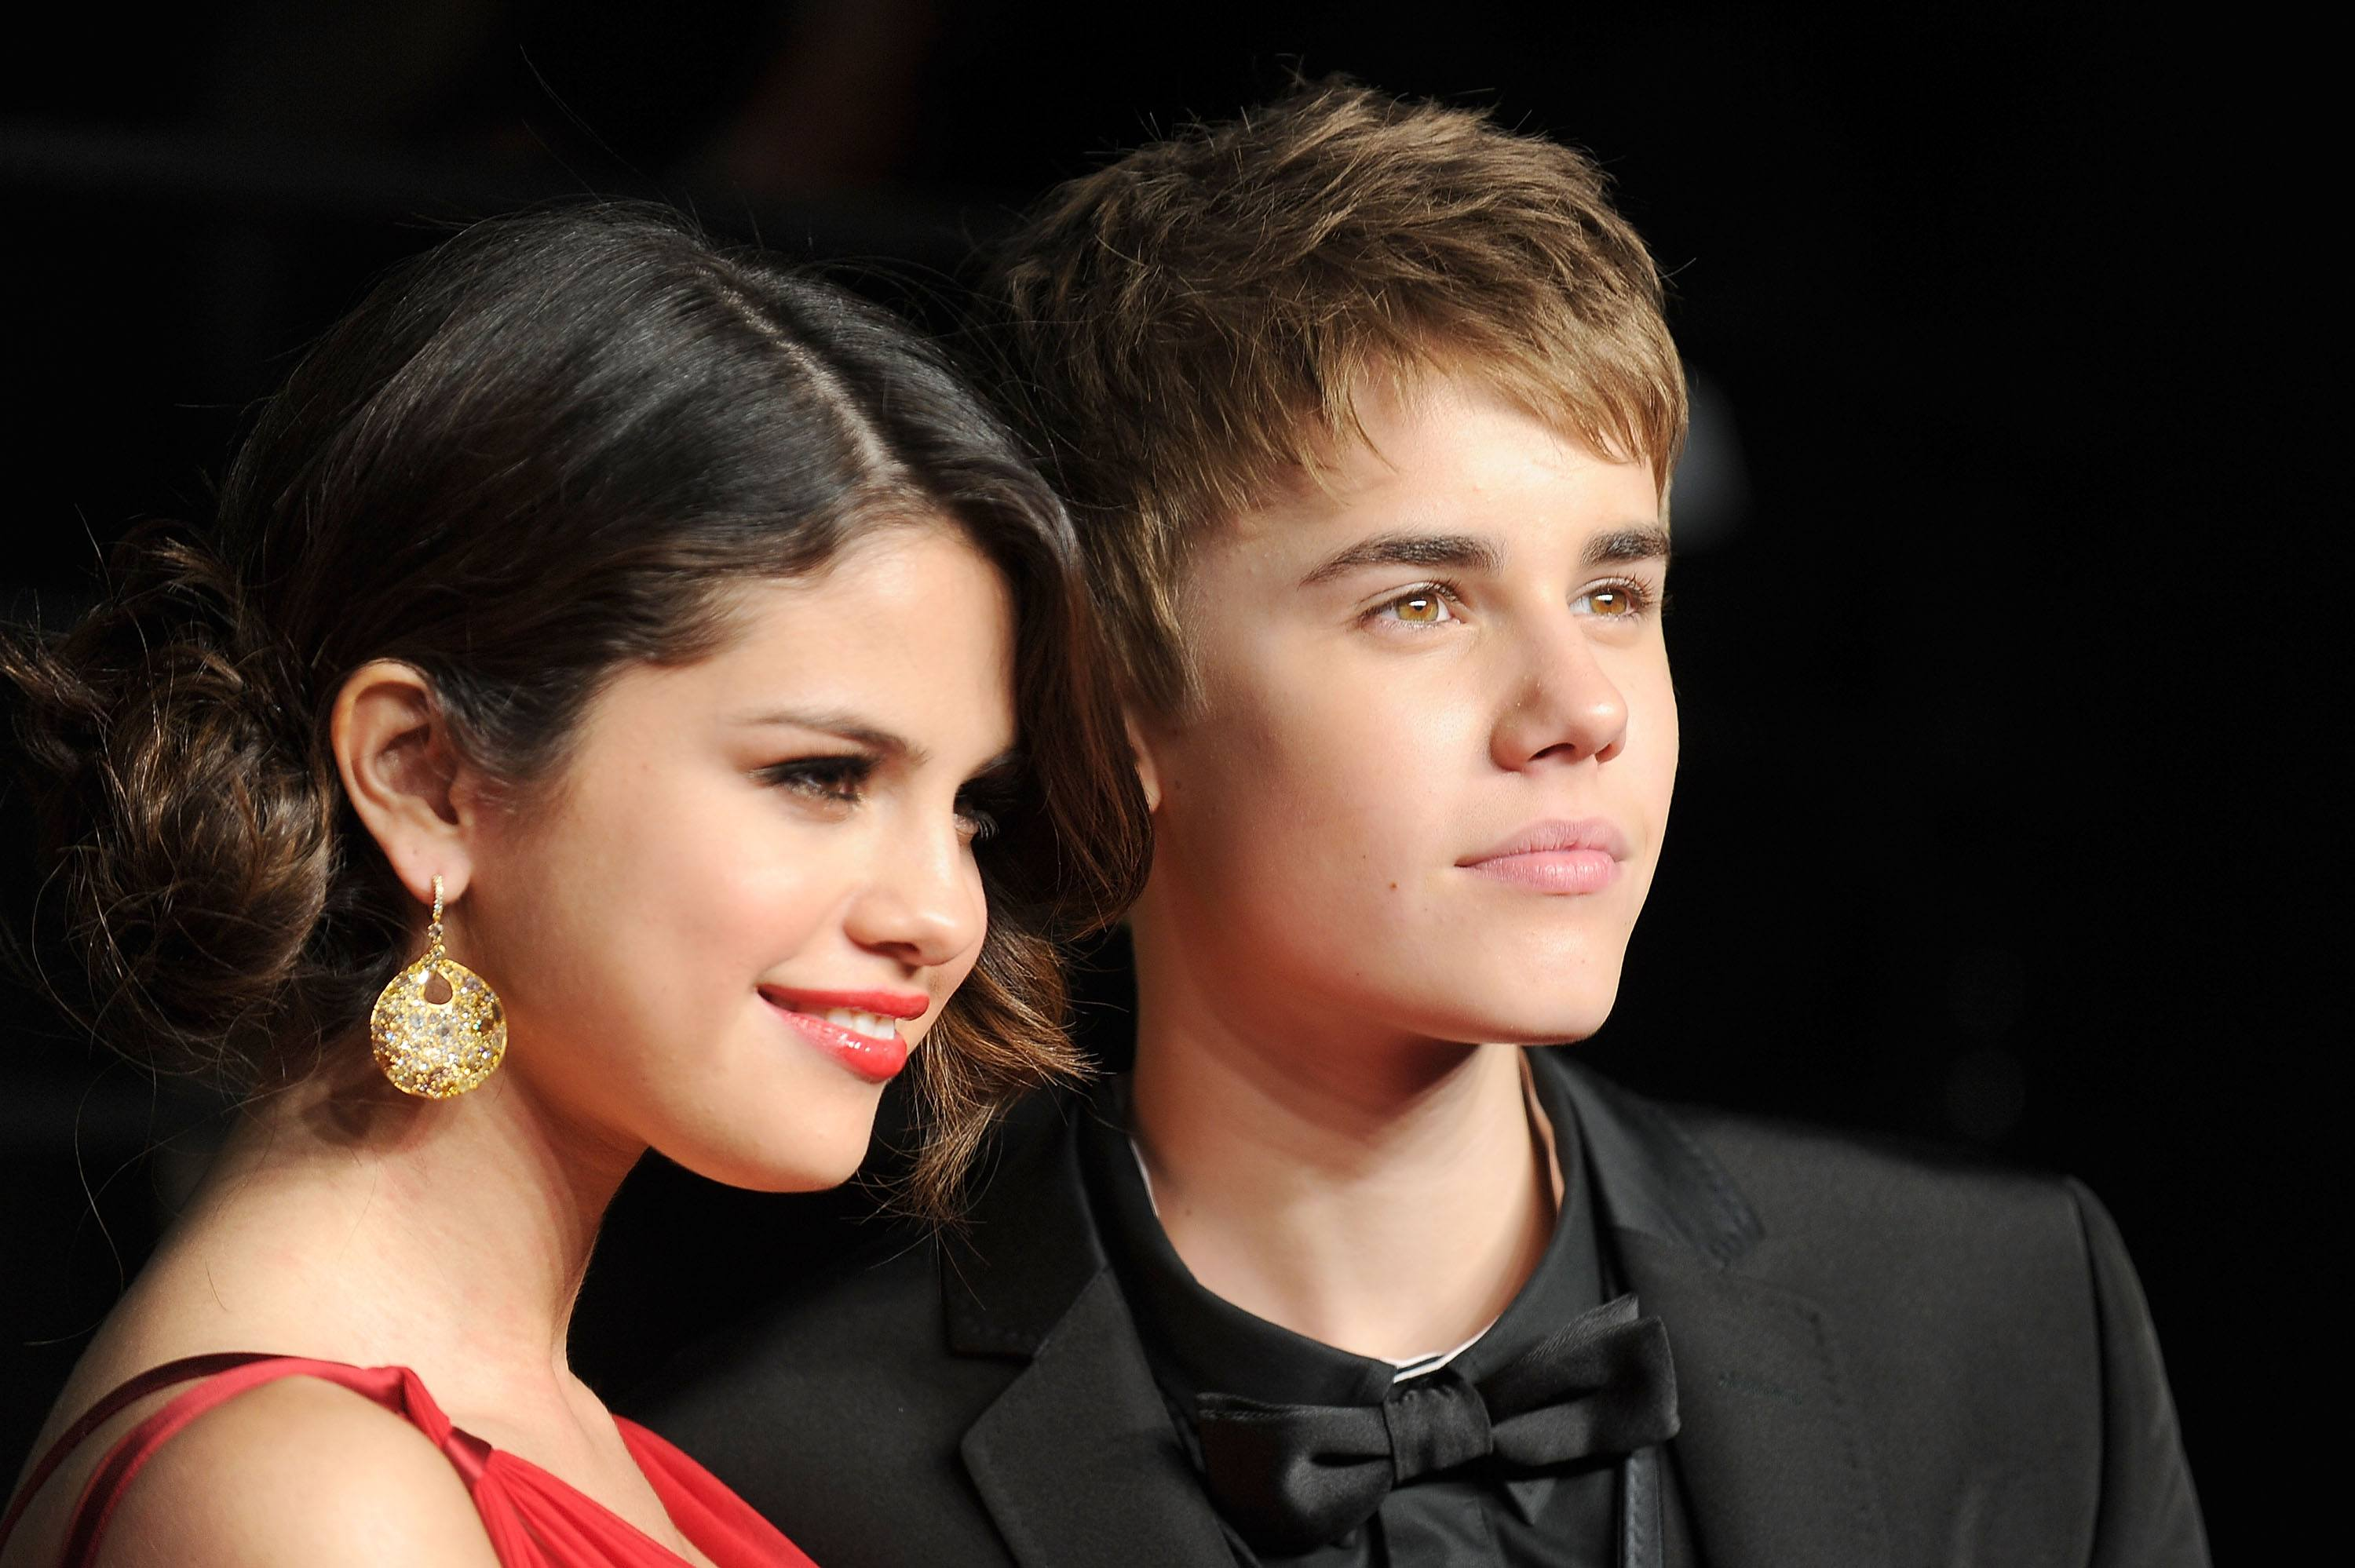 Selena Gomez and Justin Bieber arrive at the Vanity Fair Oscar party hosted by Graydon Carter held at Sunset Tower on February 27, 2011 in West Hollywood, California.